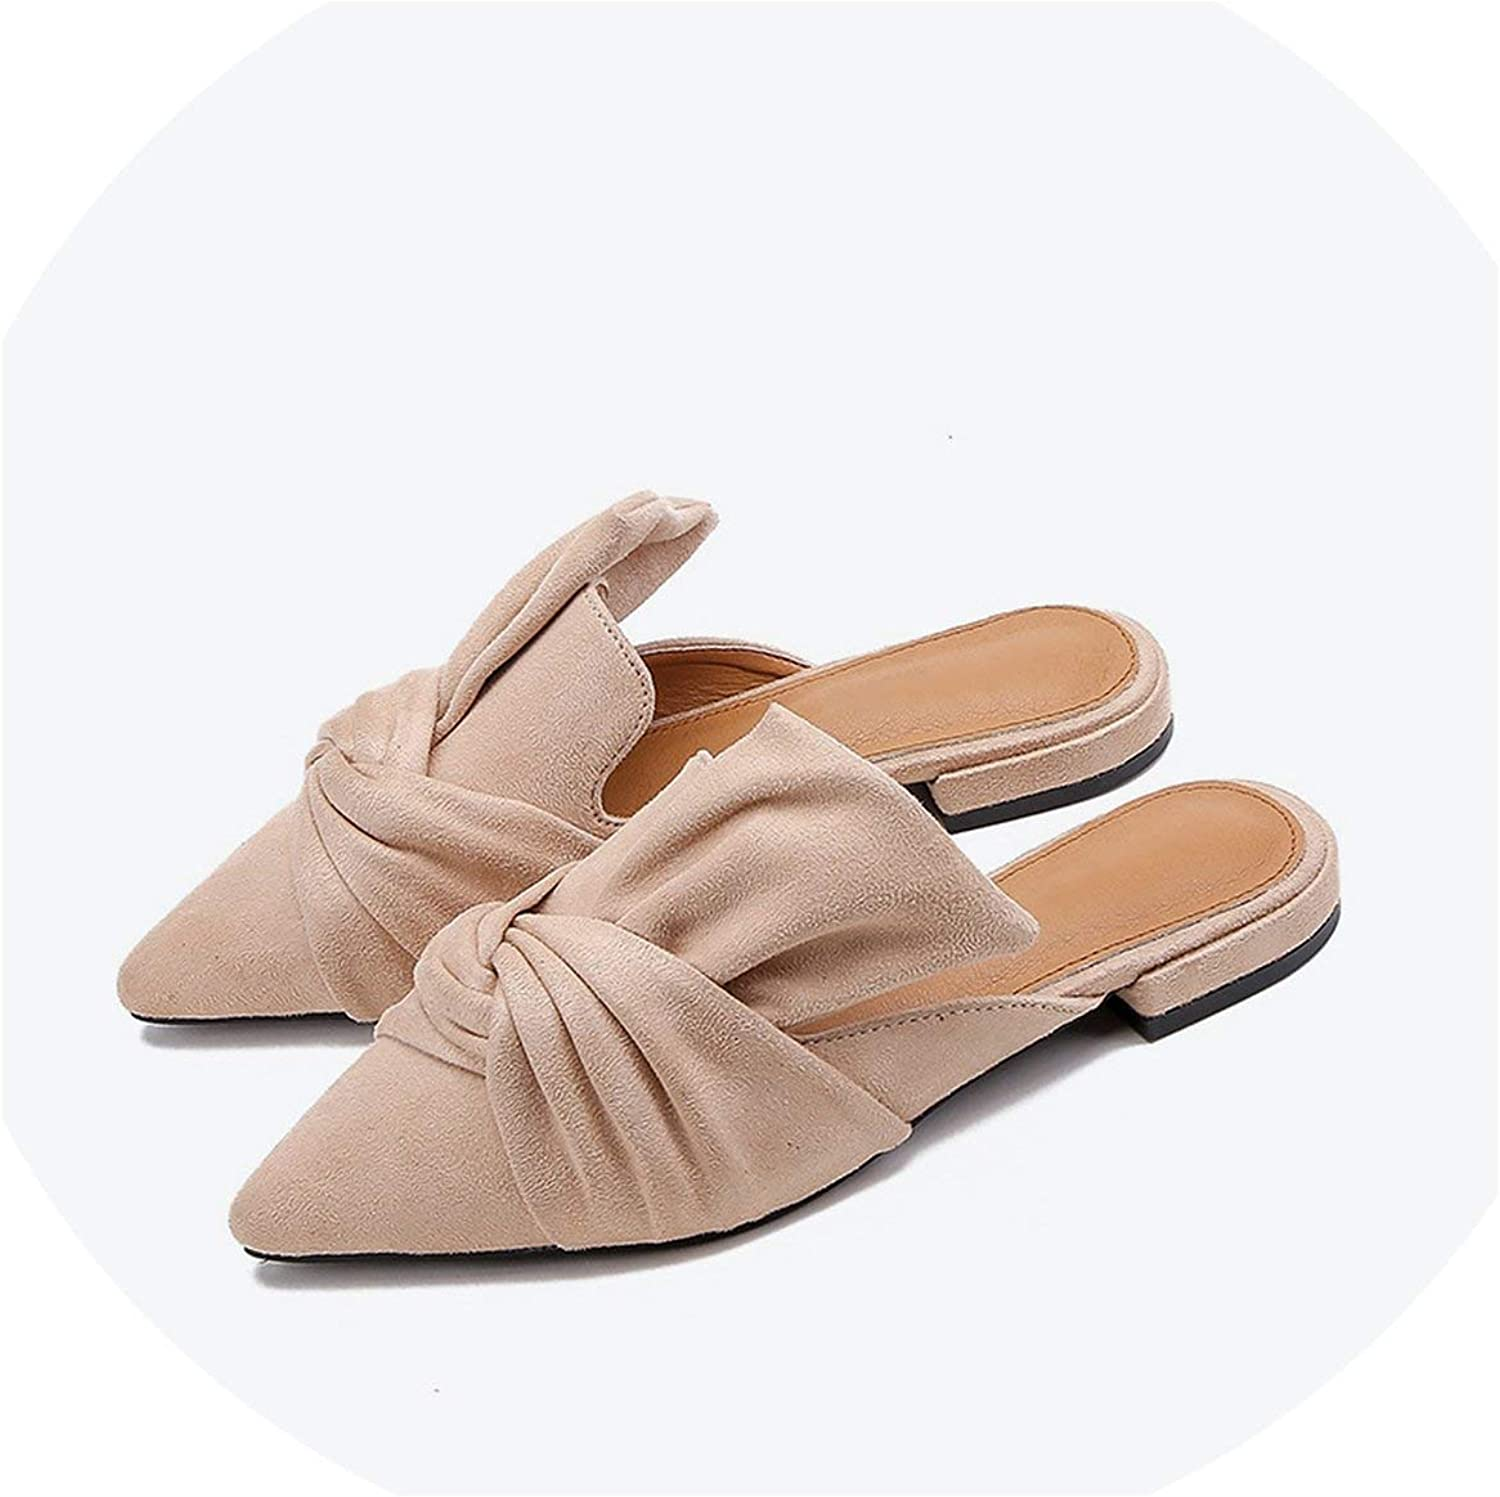 I Need-You Autumn Women Slippers Flock Bowtie Female Mules Fashion Low Heels shoes Pointed Toe Plus Size Elegant Woman Slipper,Apricot,6.5